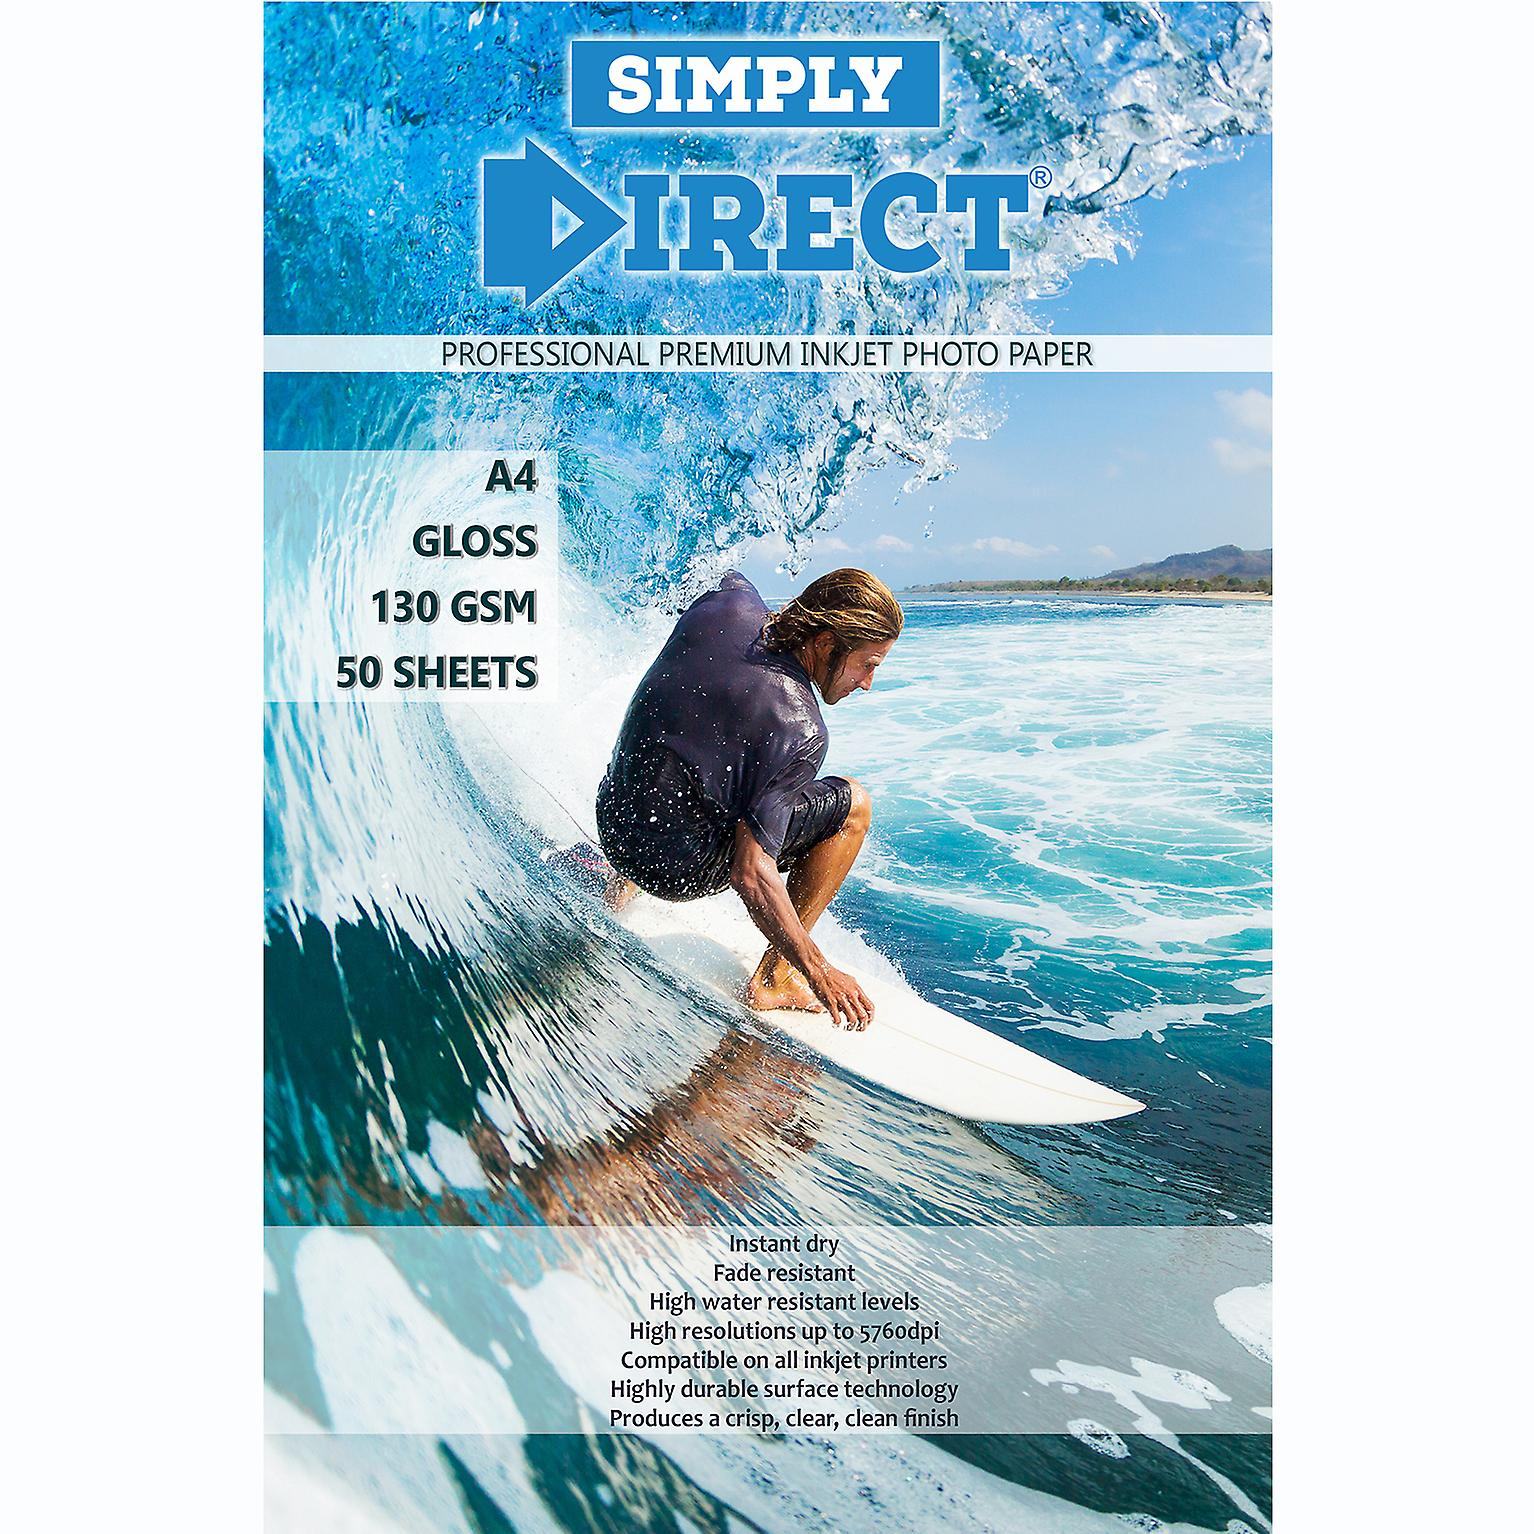 50 x Simply Direct A4 Gloss Inkjet Photo FSC Printing Paper - 130gsm - Professional Premium Photographic Paper